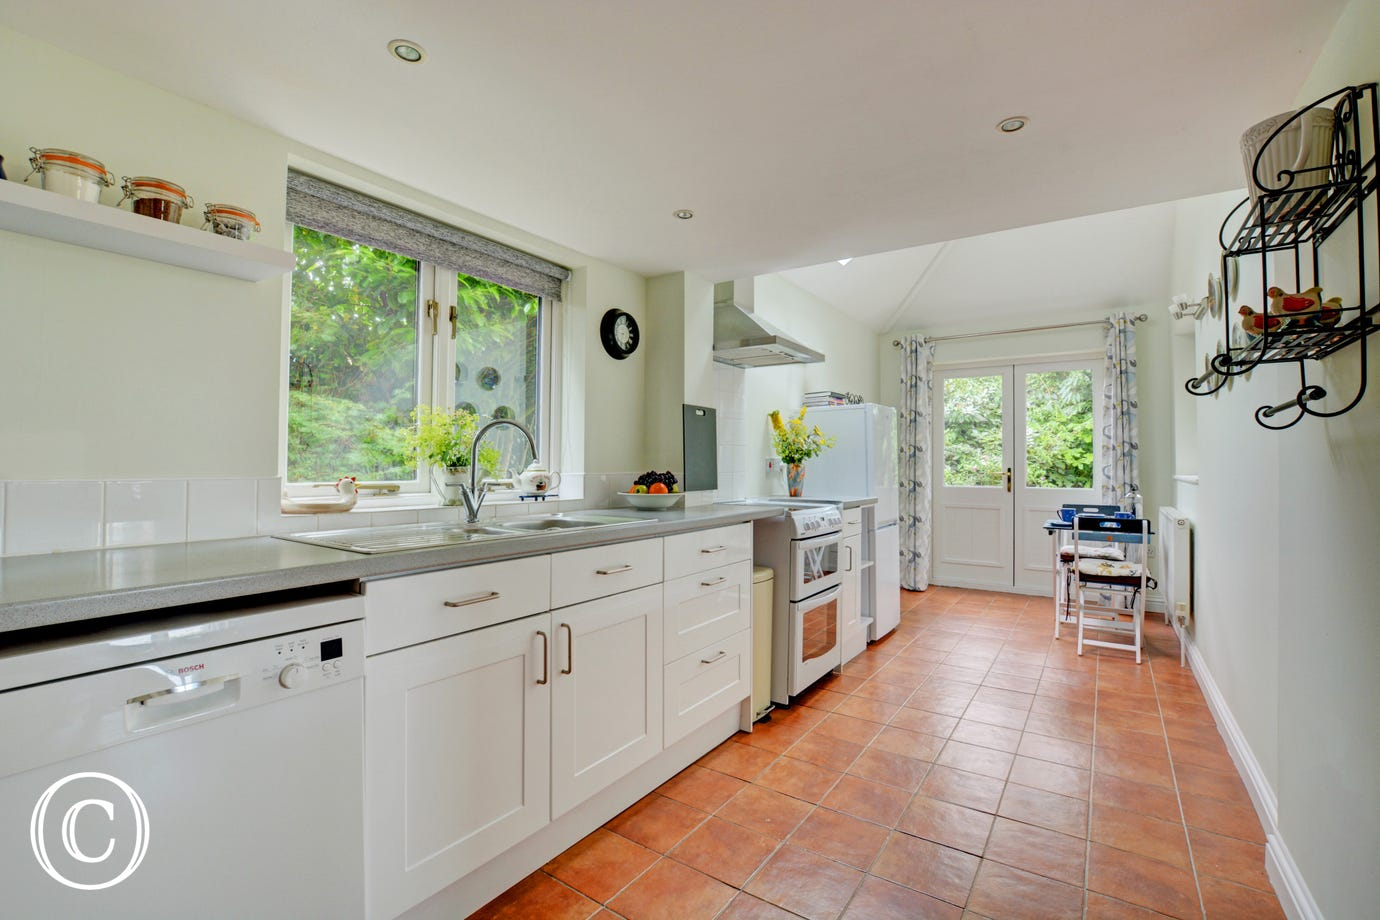 Light and airy kitchen with  built-in electric oven and hob, fridge/freezer, dishwasher, microwave and bistro table and chairs for two